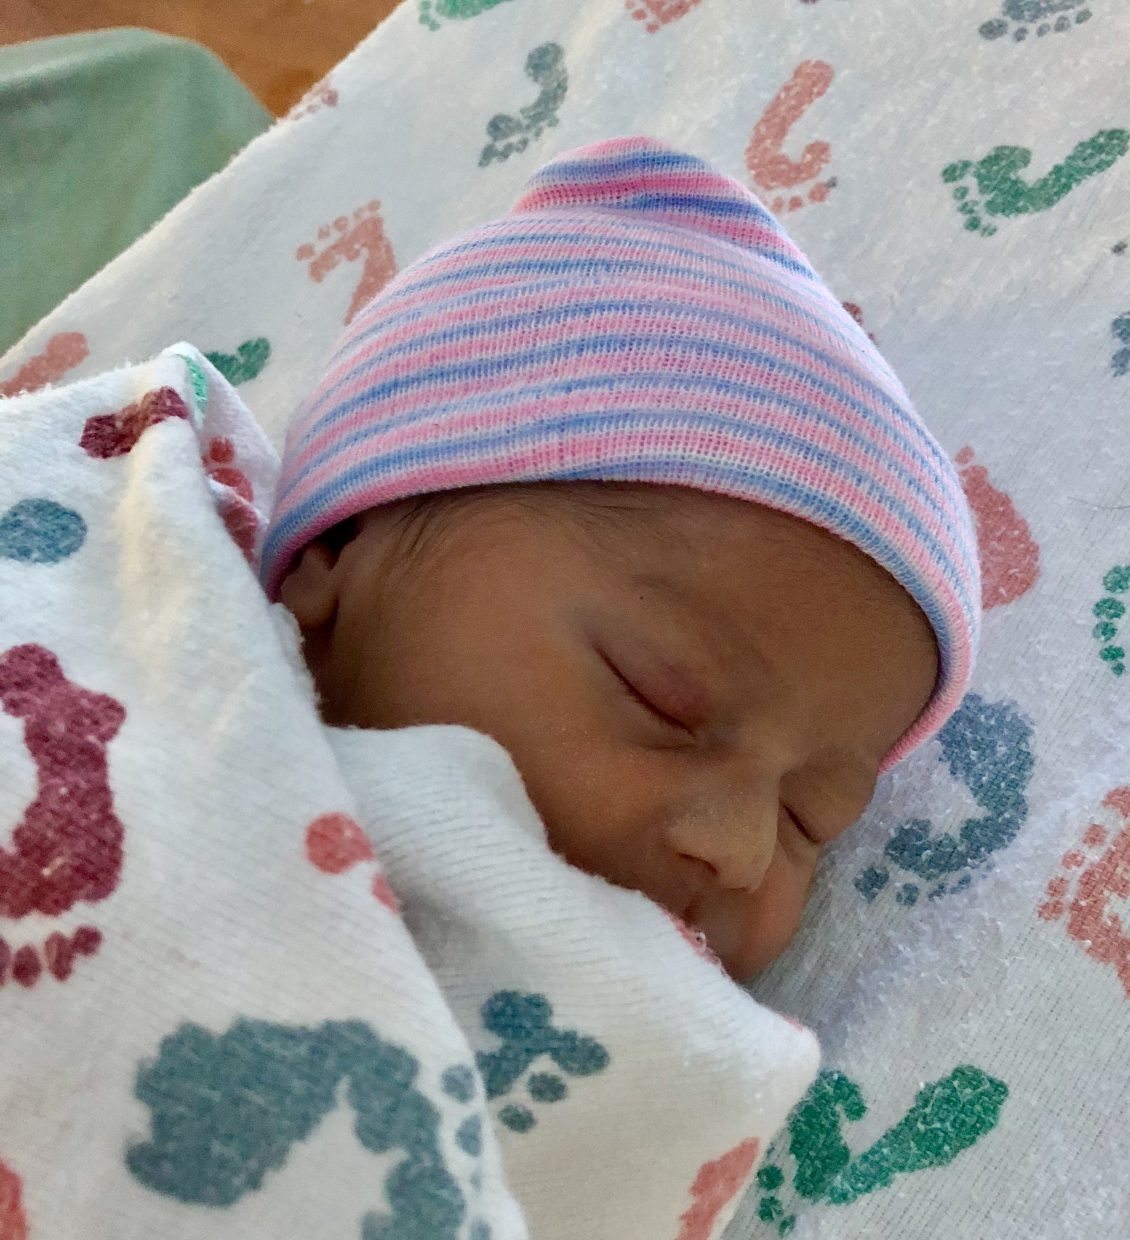 Winter Stormm Mendez was the first baby born in Summit County in 2018.